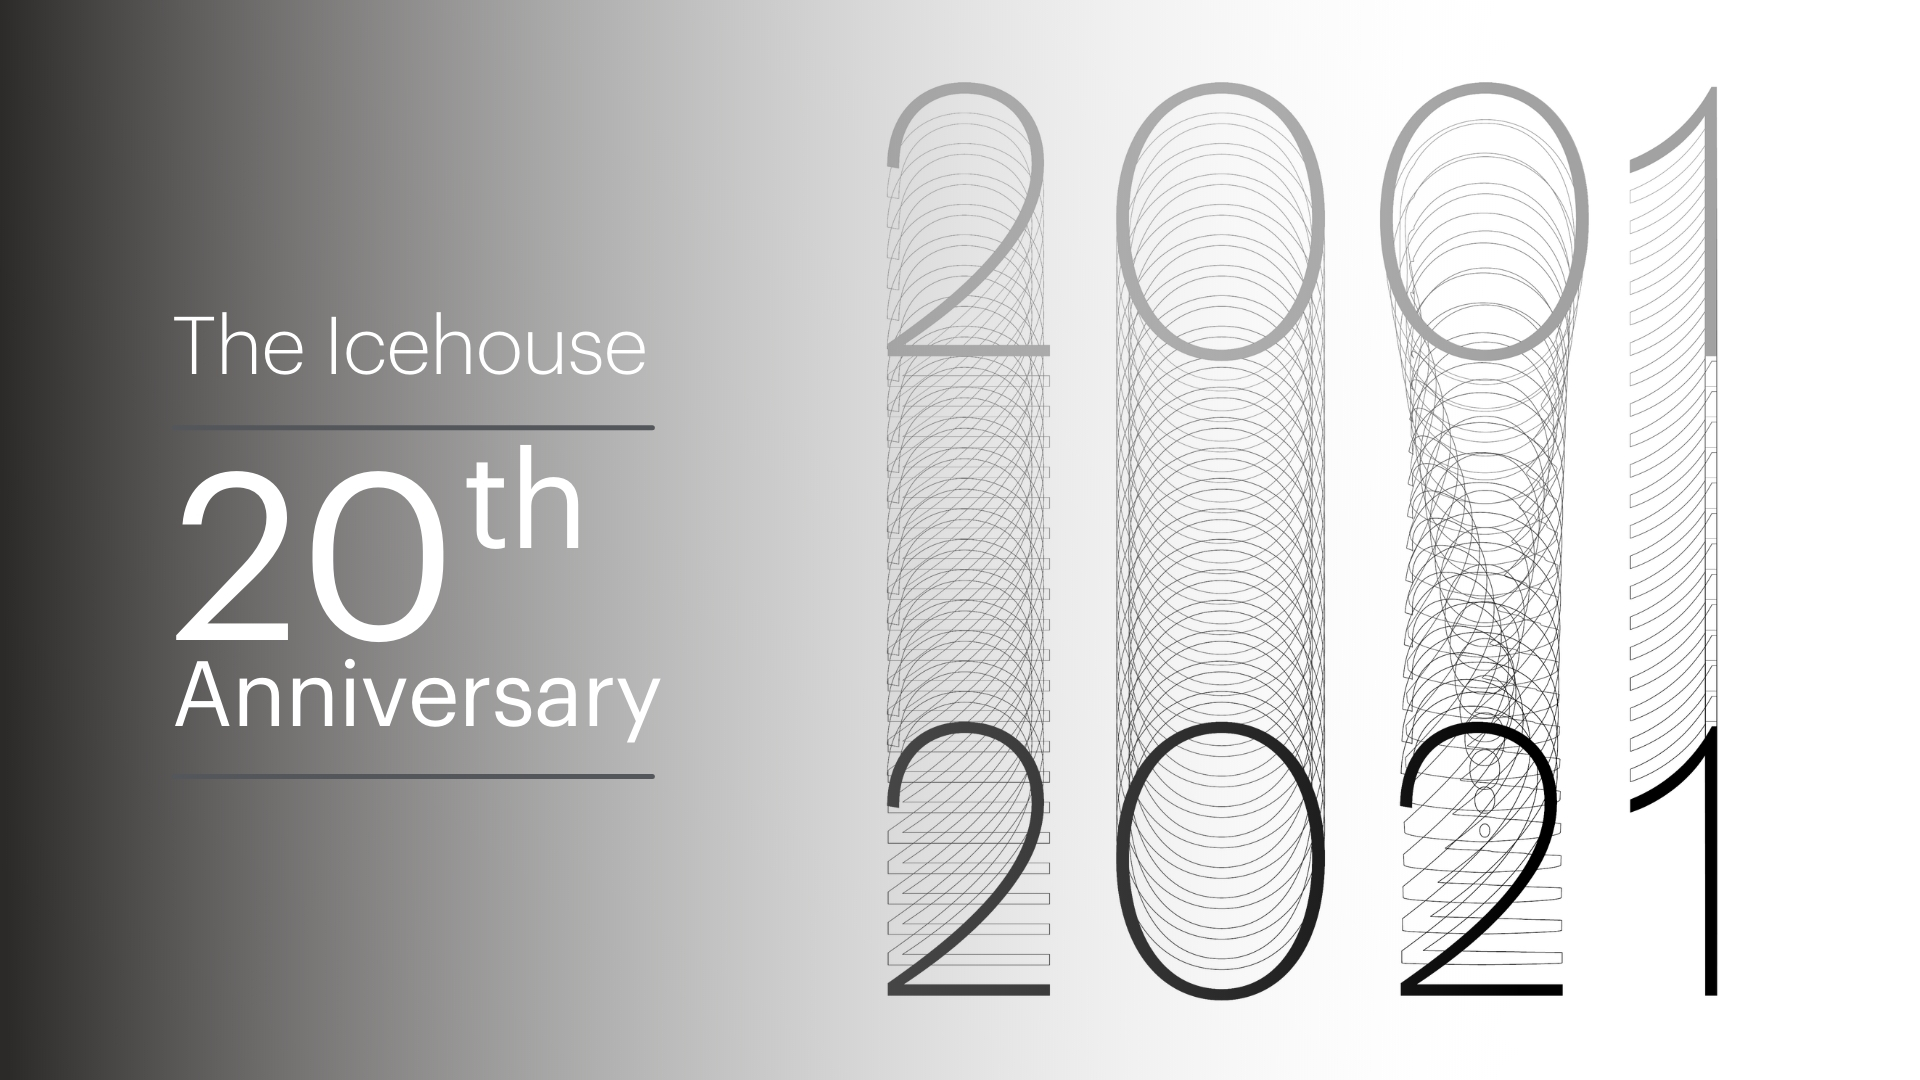 The Icehouse 20th Anniversary (3)